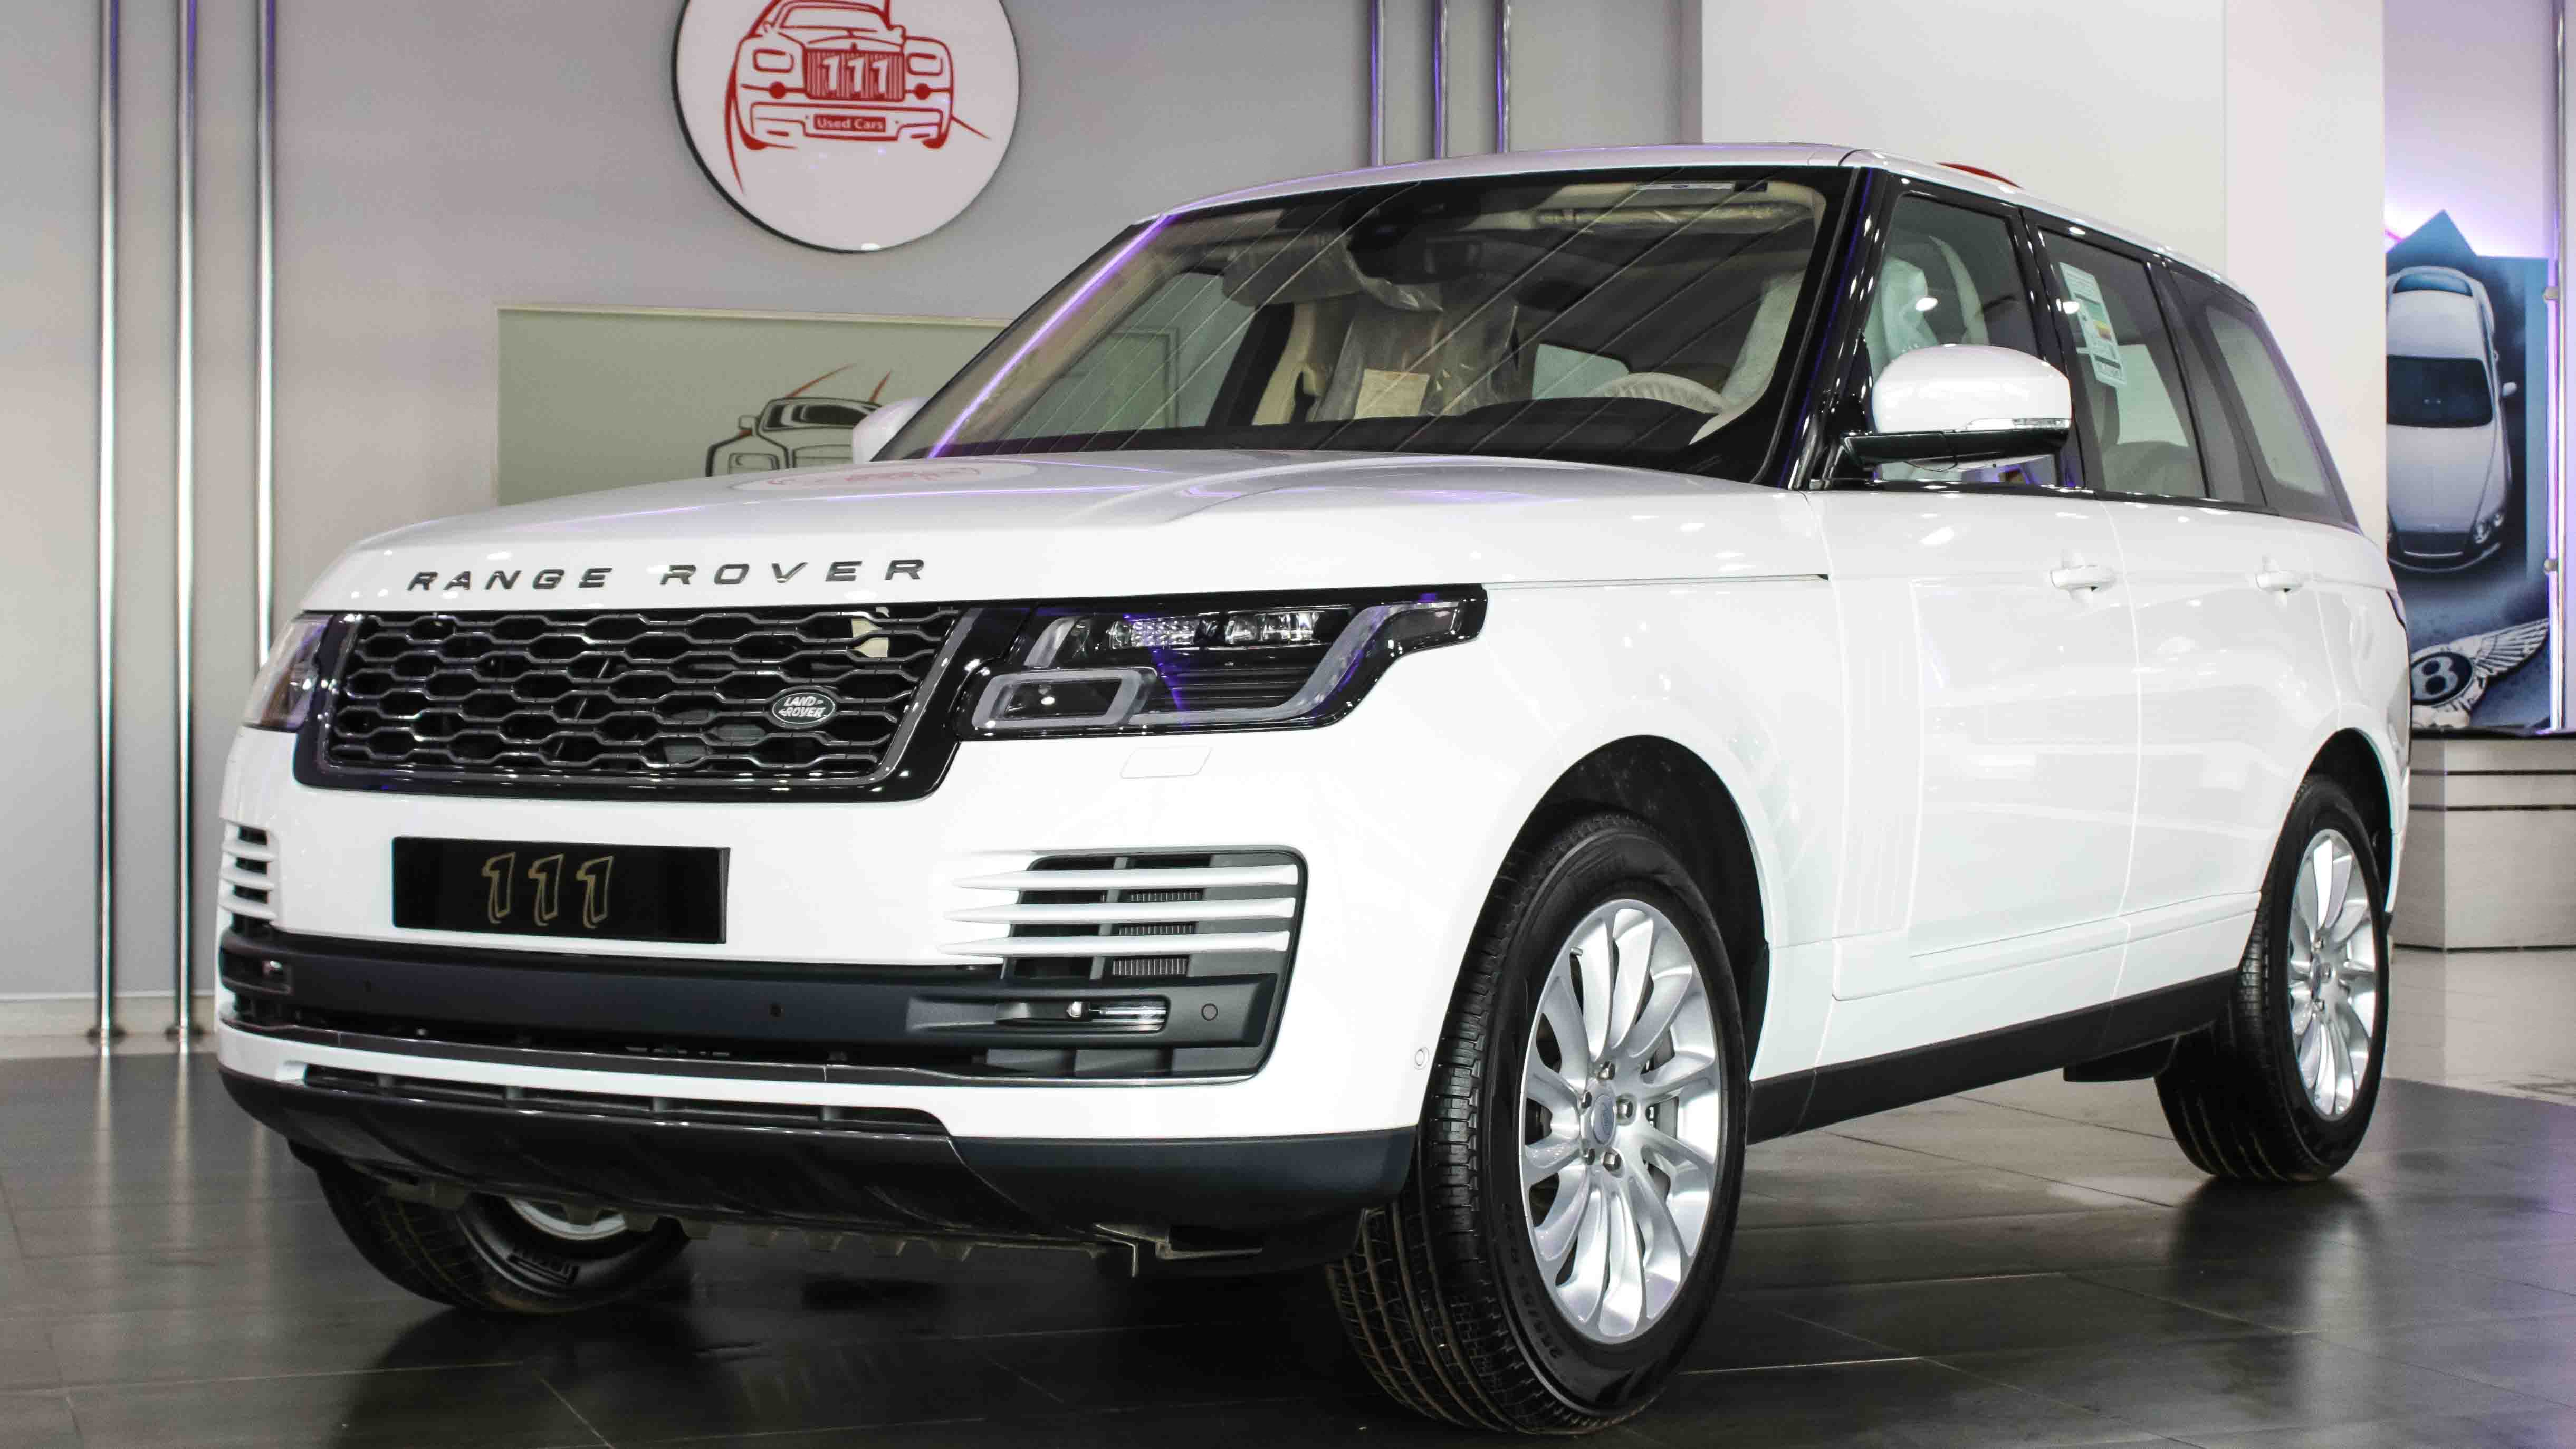 rovers beast nominees hemmings oldest among facebook land past lr landrover the rover for ihma car of year used series prototype turin present blog